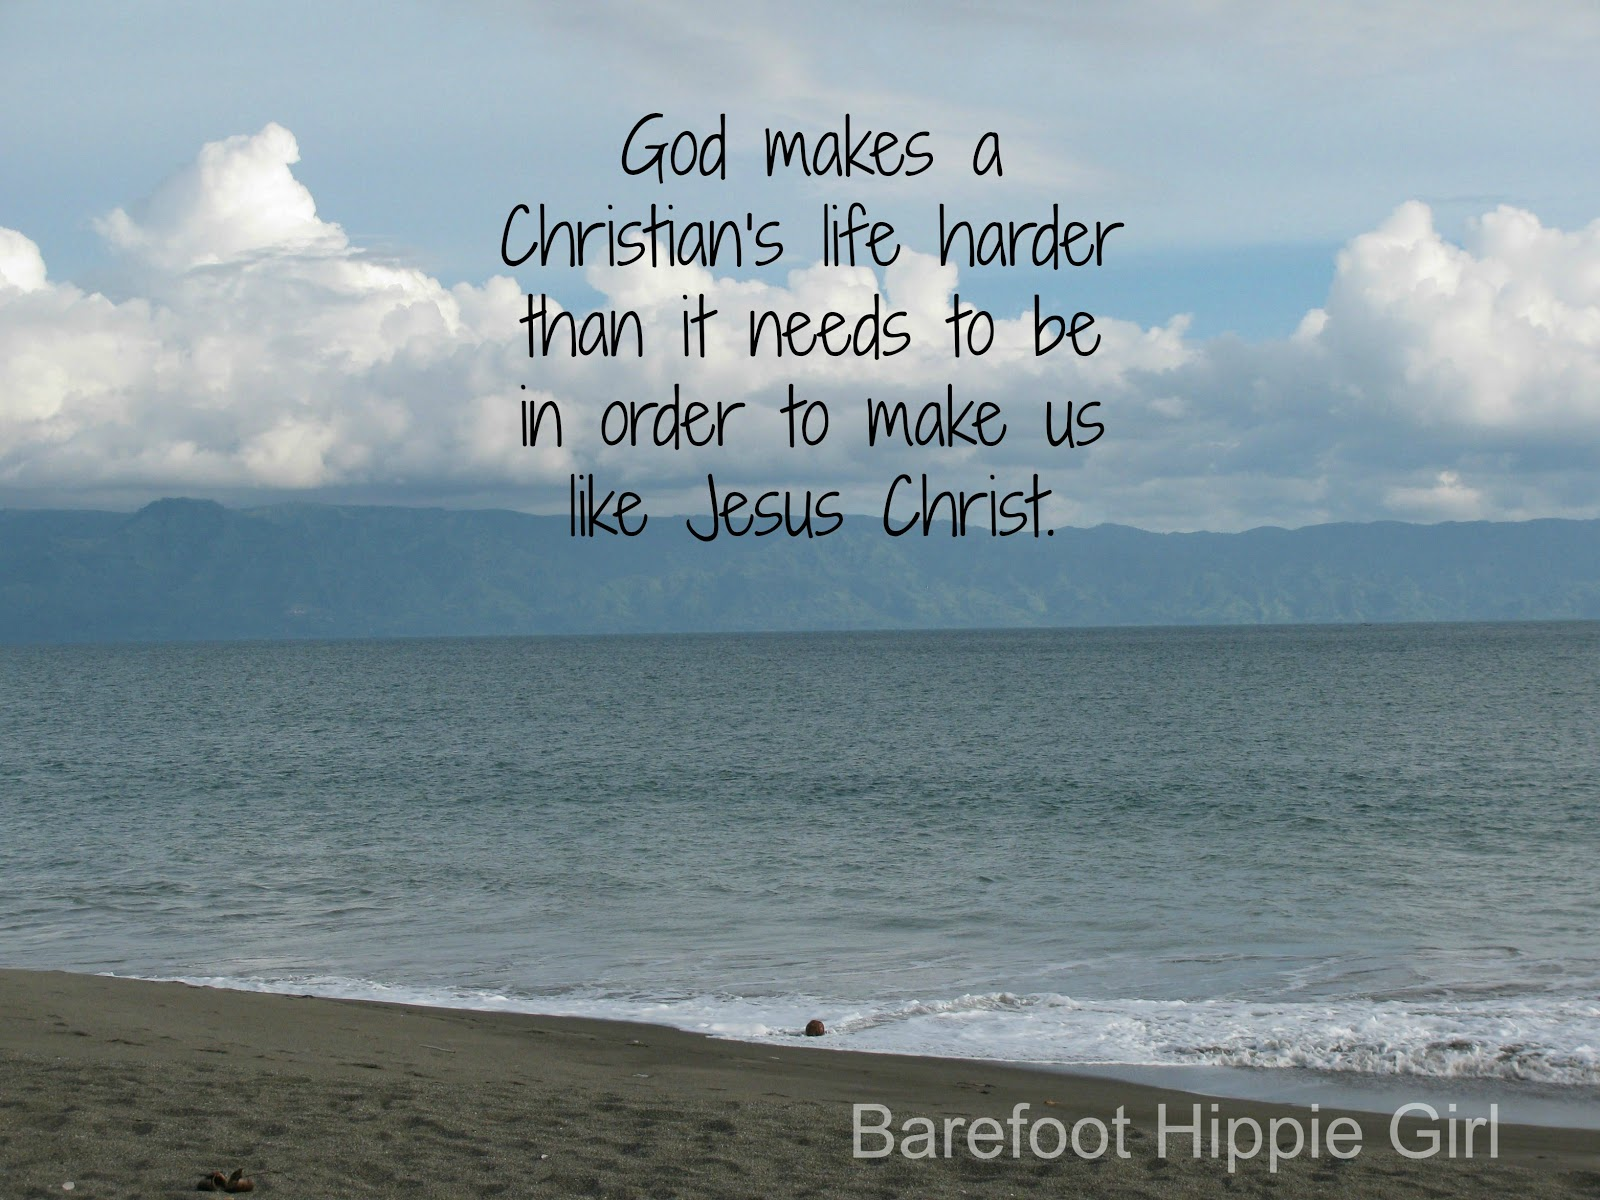 Quotes About Trial In Life: Barefoot Hippie Girl: 10 Purposes For Life's Trials